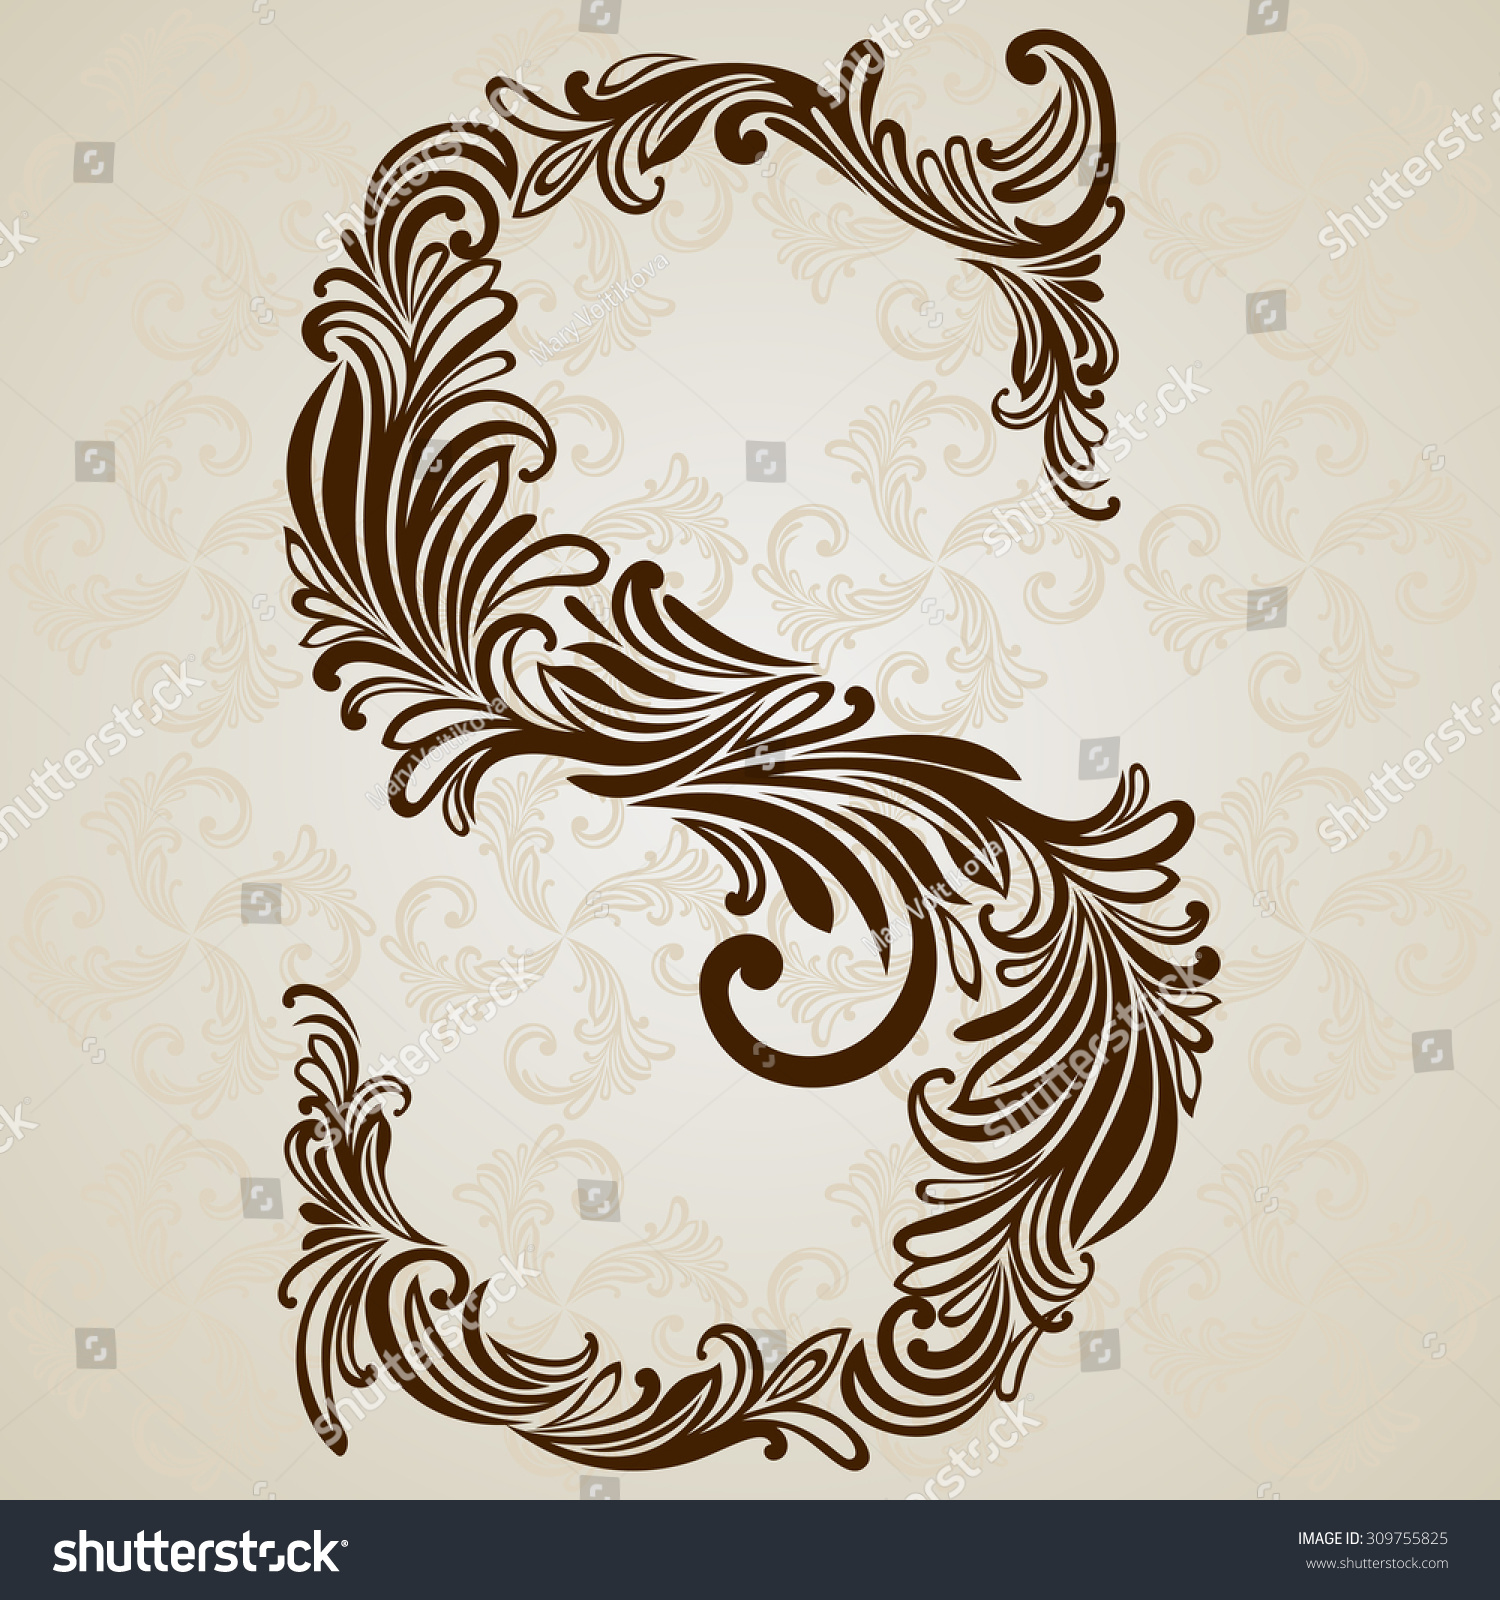 Calligraphic font vintage initials letter s vector design background